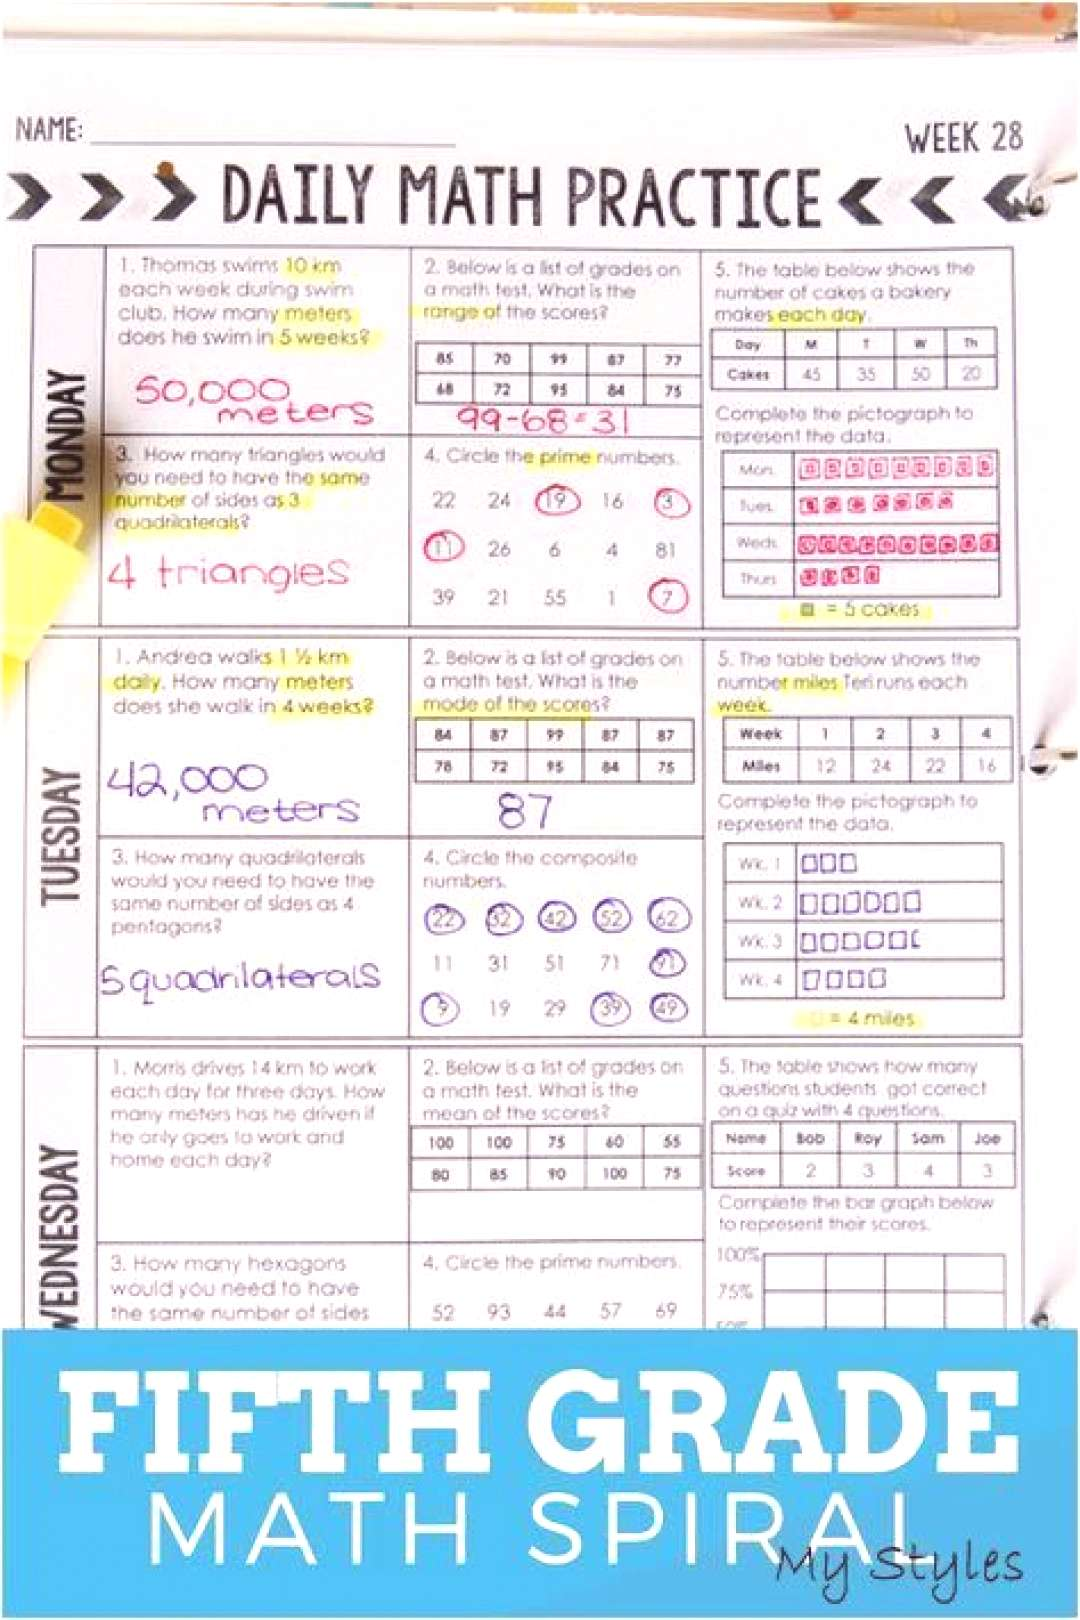 5th Grade Daily Math Spiral Review - CCSS - TEKS Aligned Morning Work Bundle